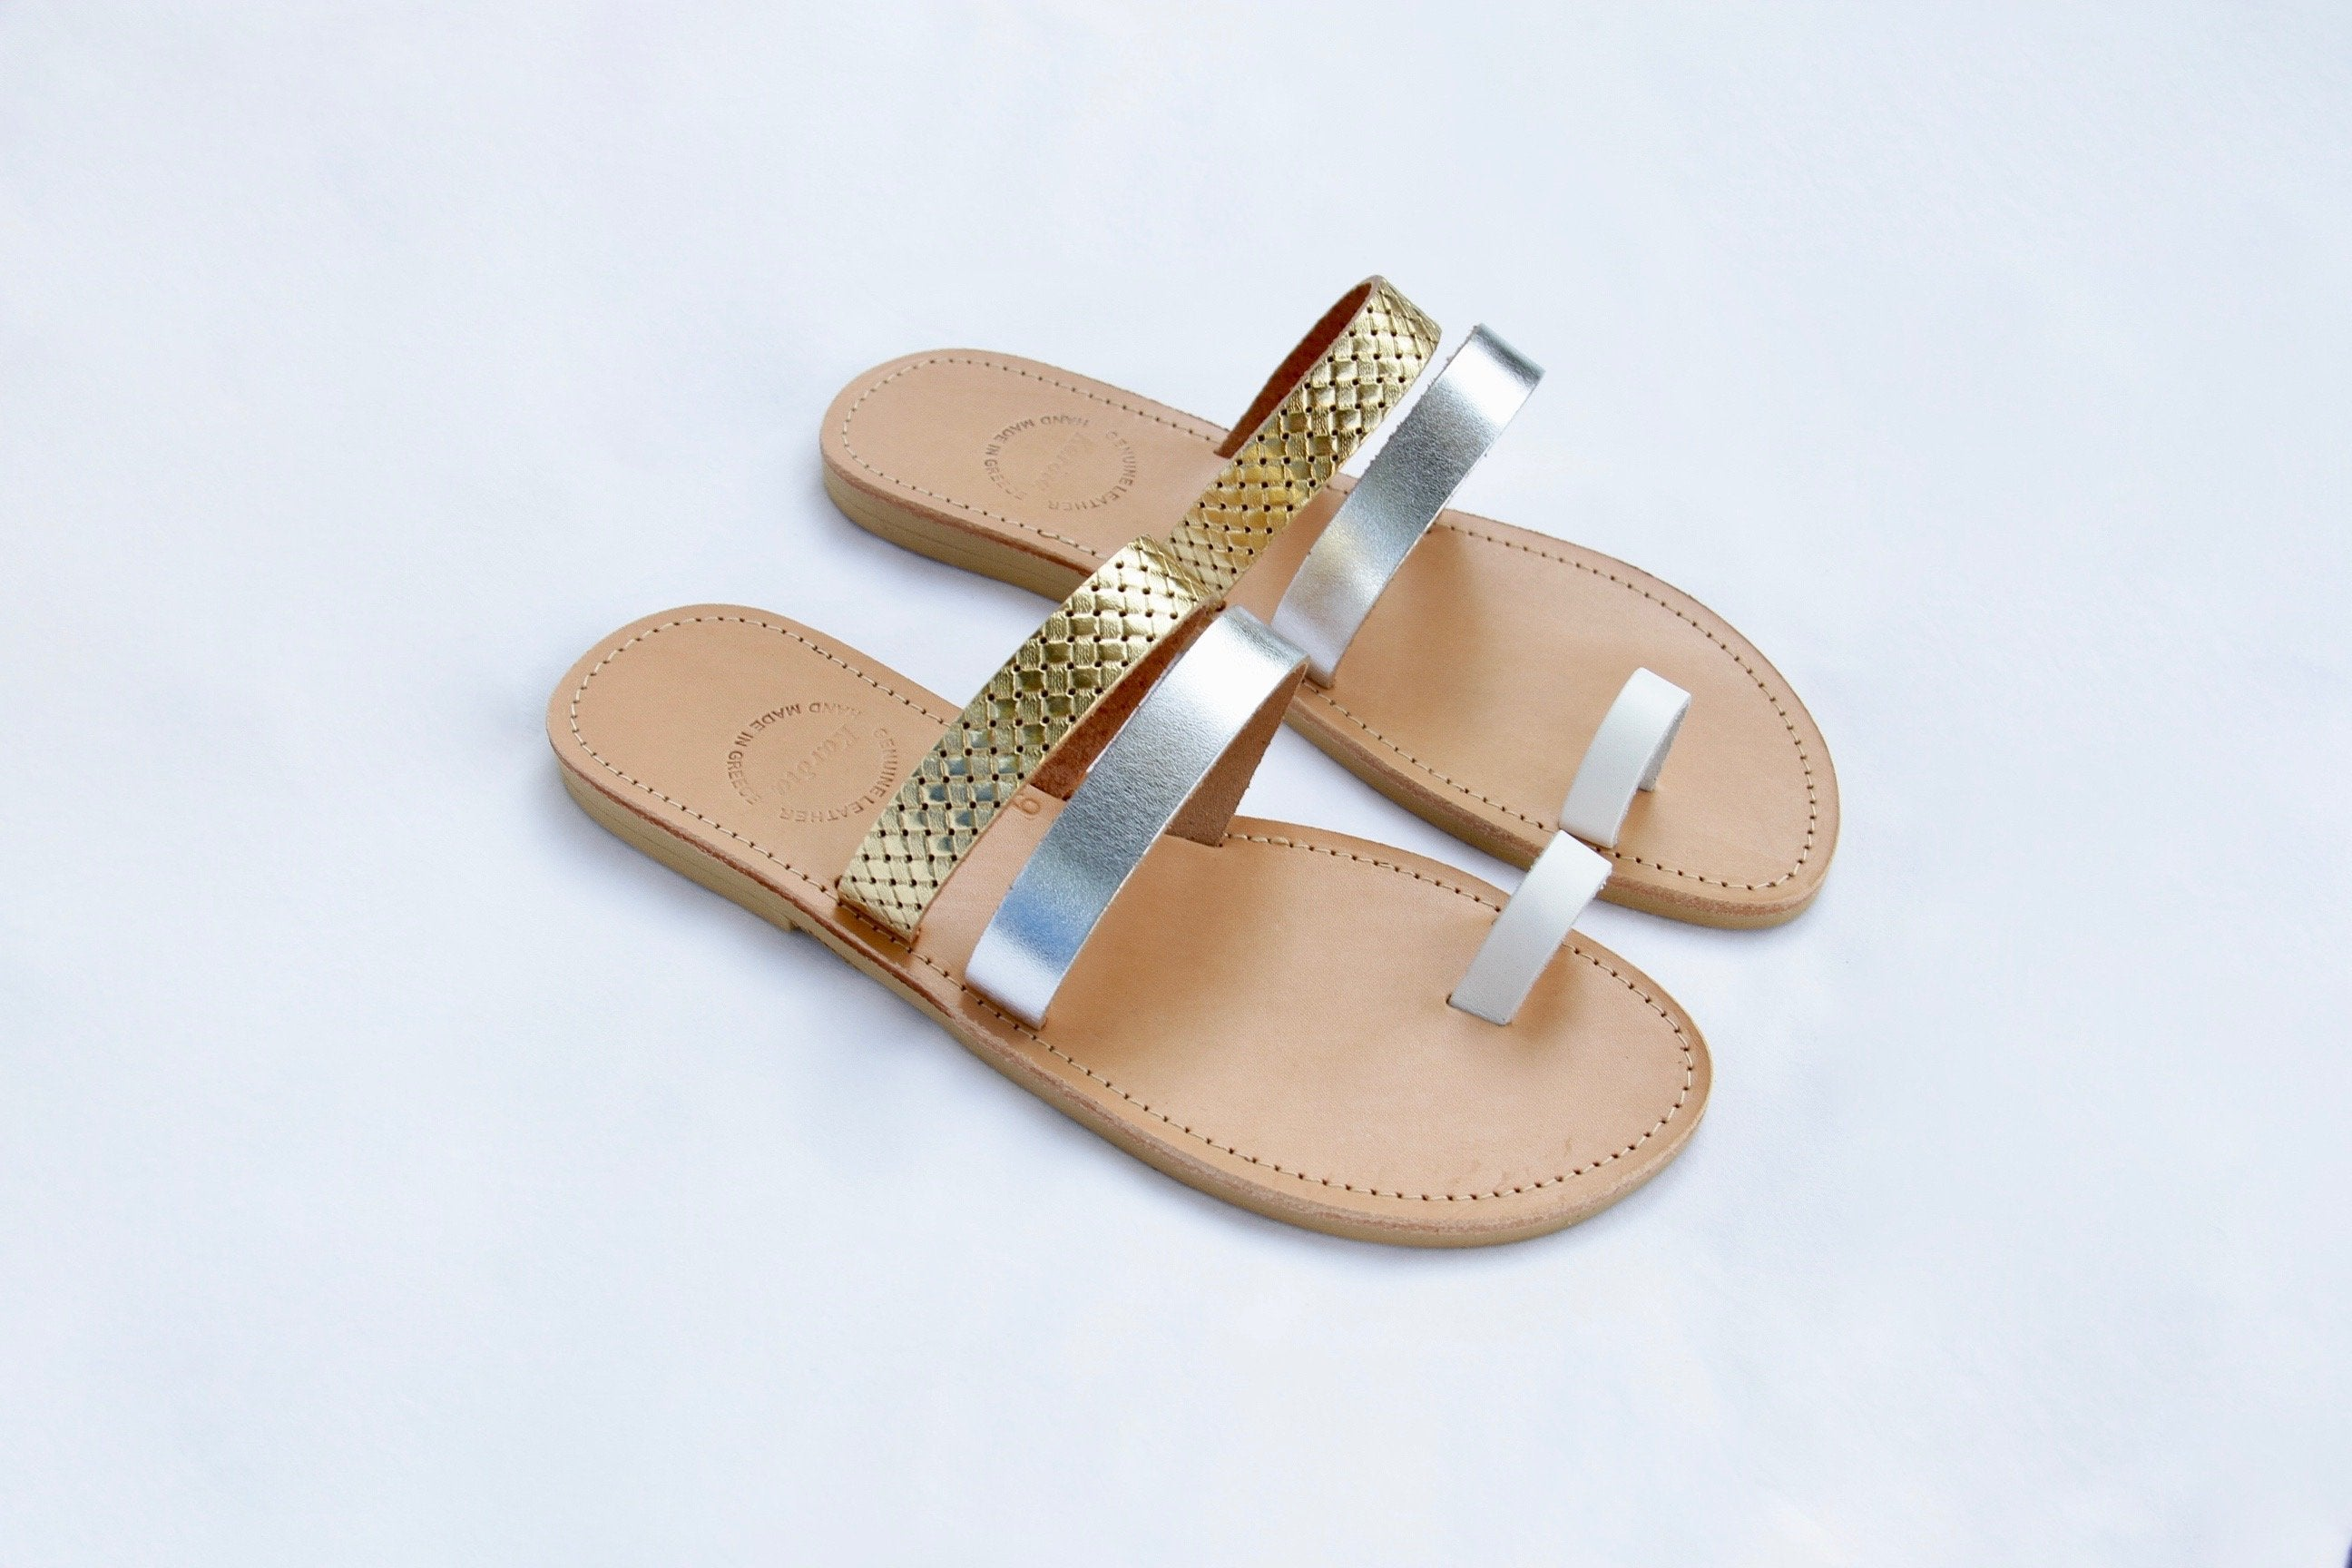 Asteria Sandals with Gold Silver and White Straps - Kardia